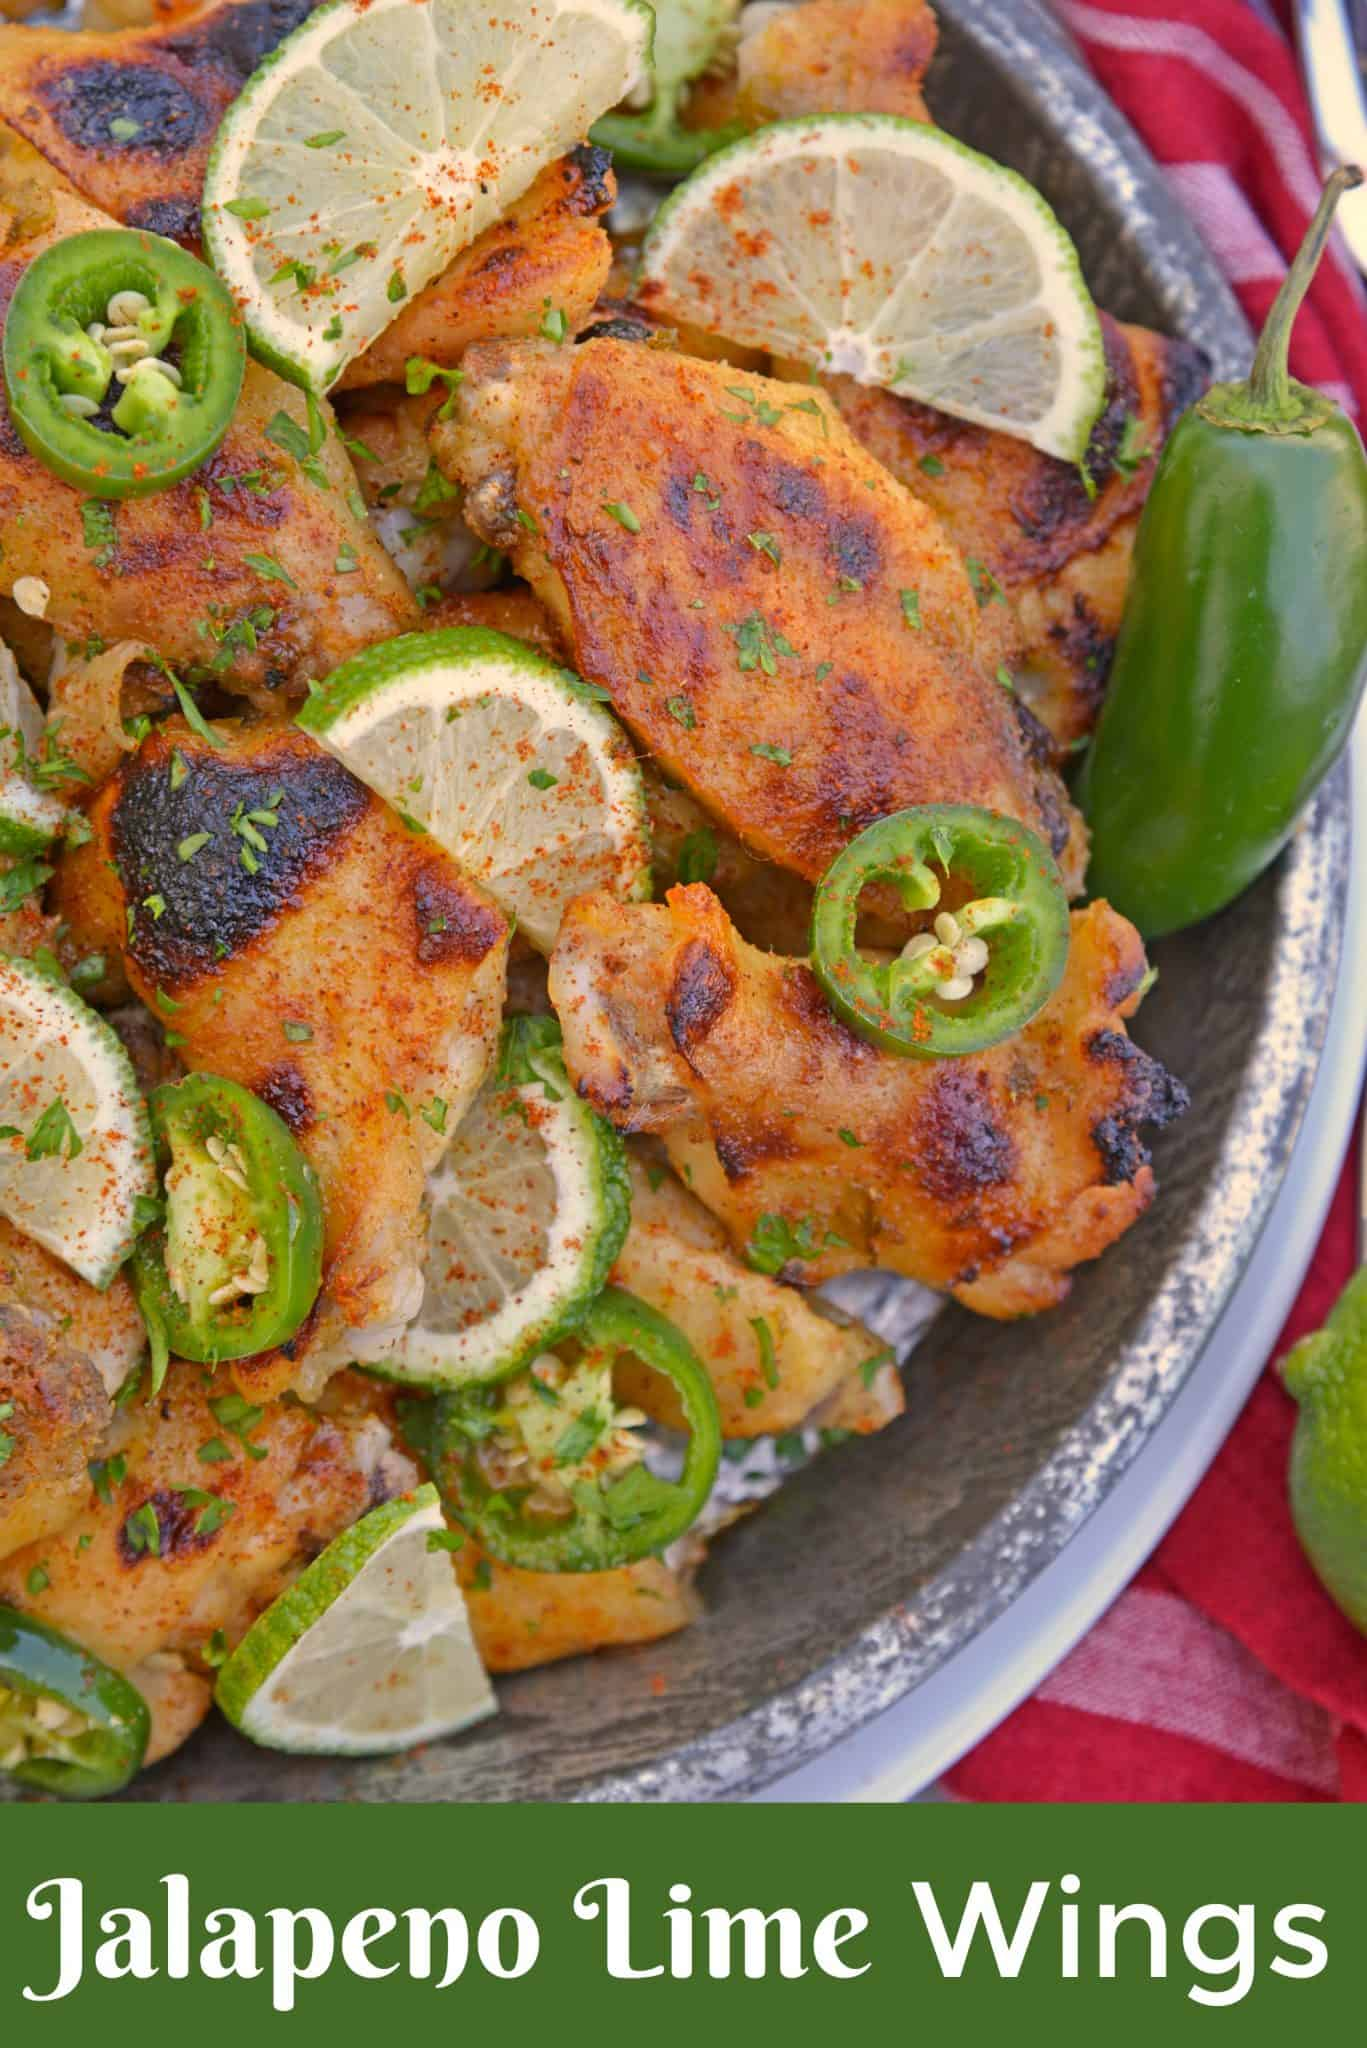 Sweet and spicy Jalapeno Lime Wings are baked wings perfect for holiday parties or watching the big game. A unique flavor everyone will love. #bakedchickenwings #chickenwingrecipes www.savoryexperiments.com